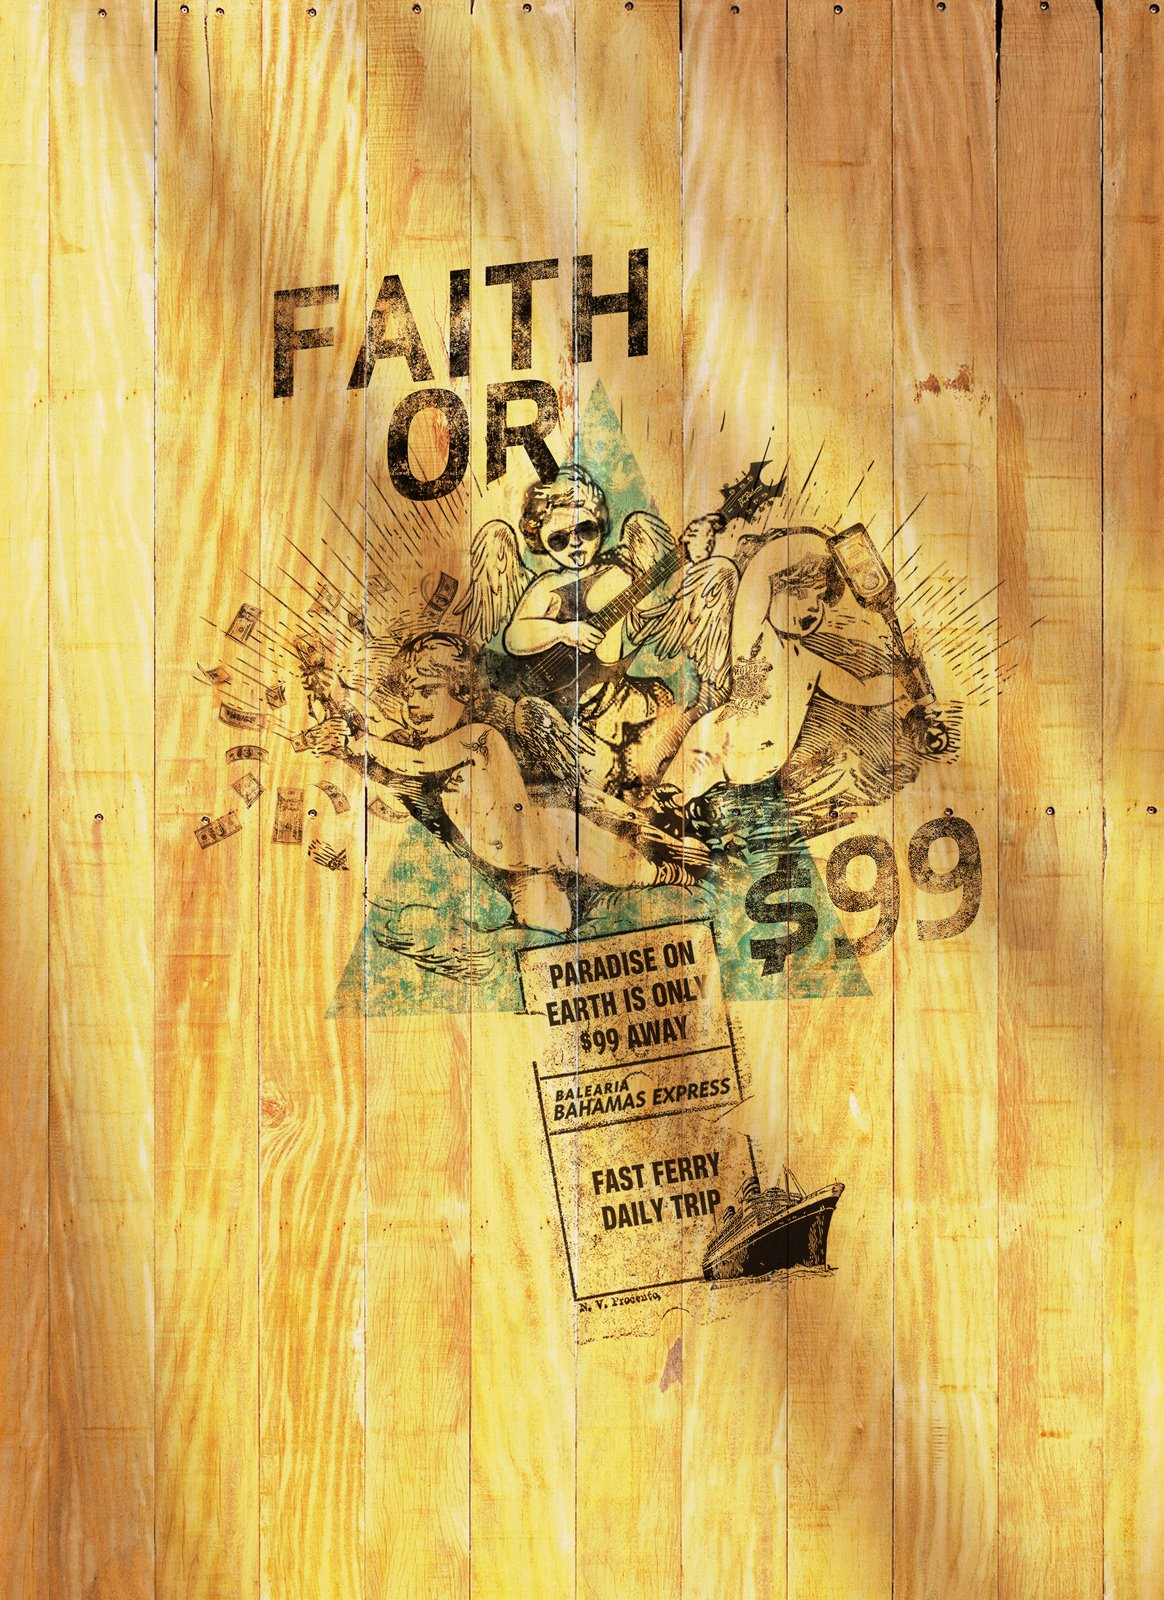 balearia-bahamas-express-faith-or-99-2000-59249.jpg